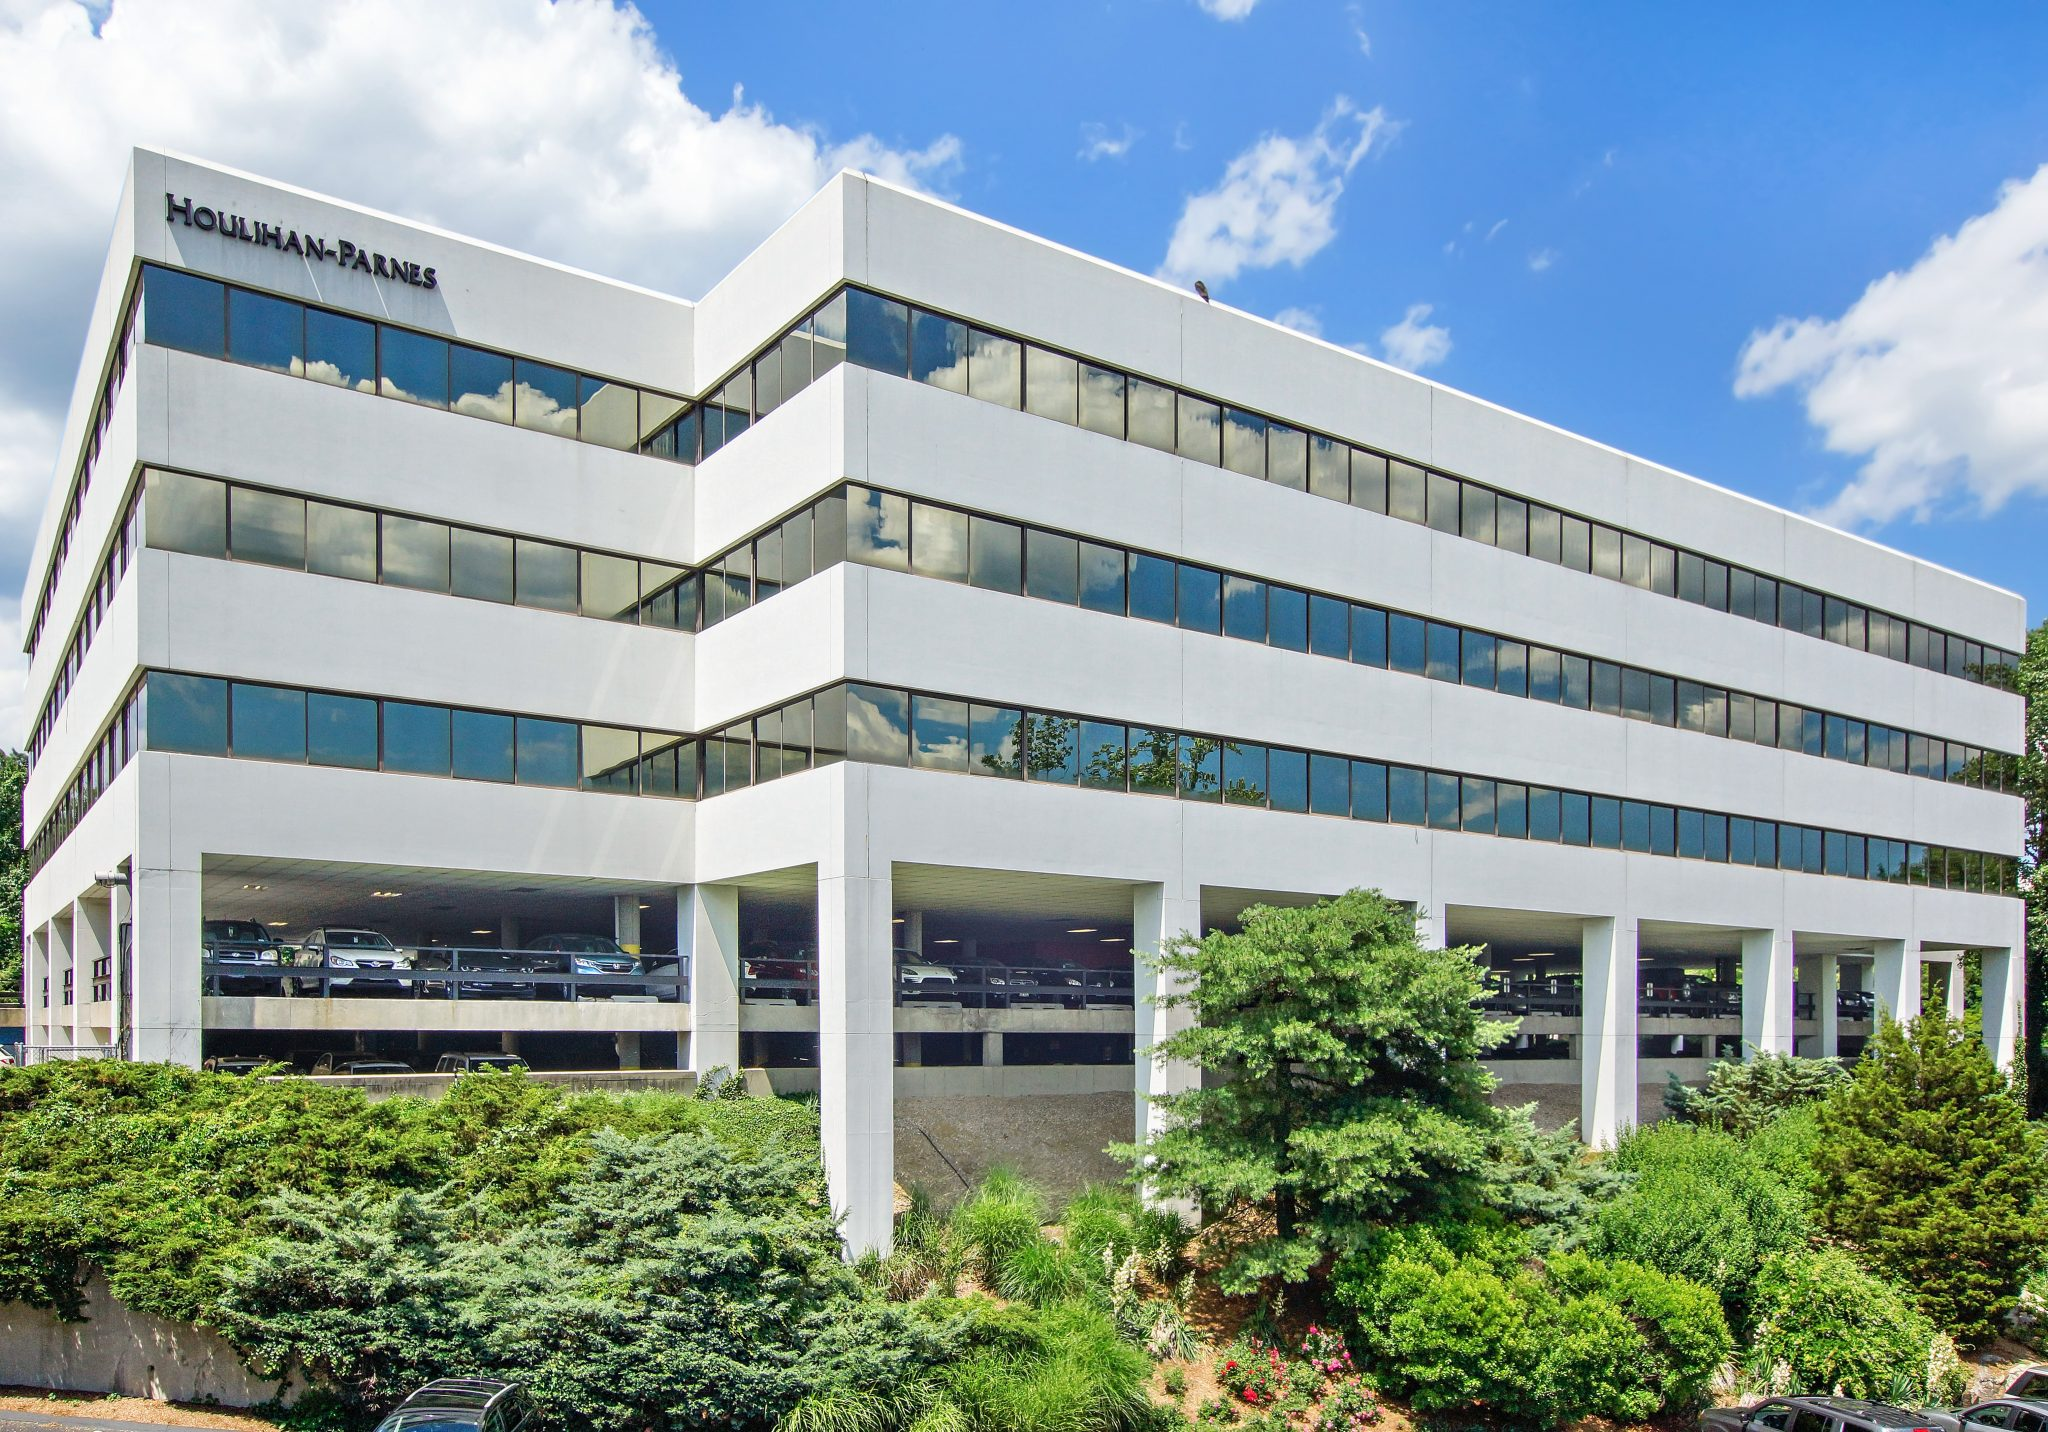 4 West Red Oak Lane – White Plains, NY 10604 – 2,023 sq. ft.